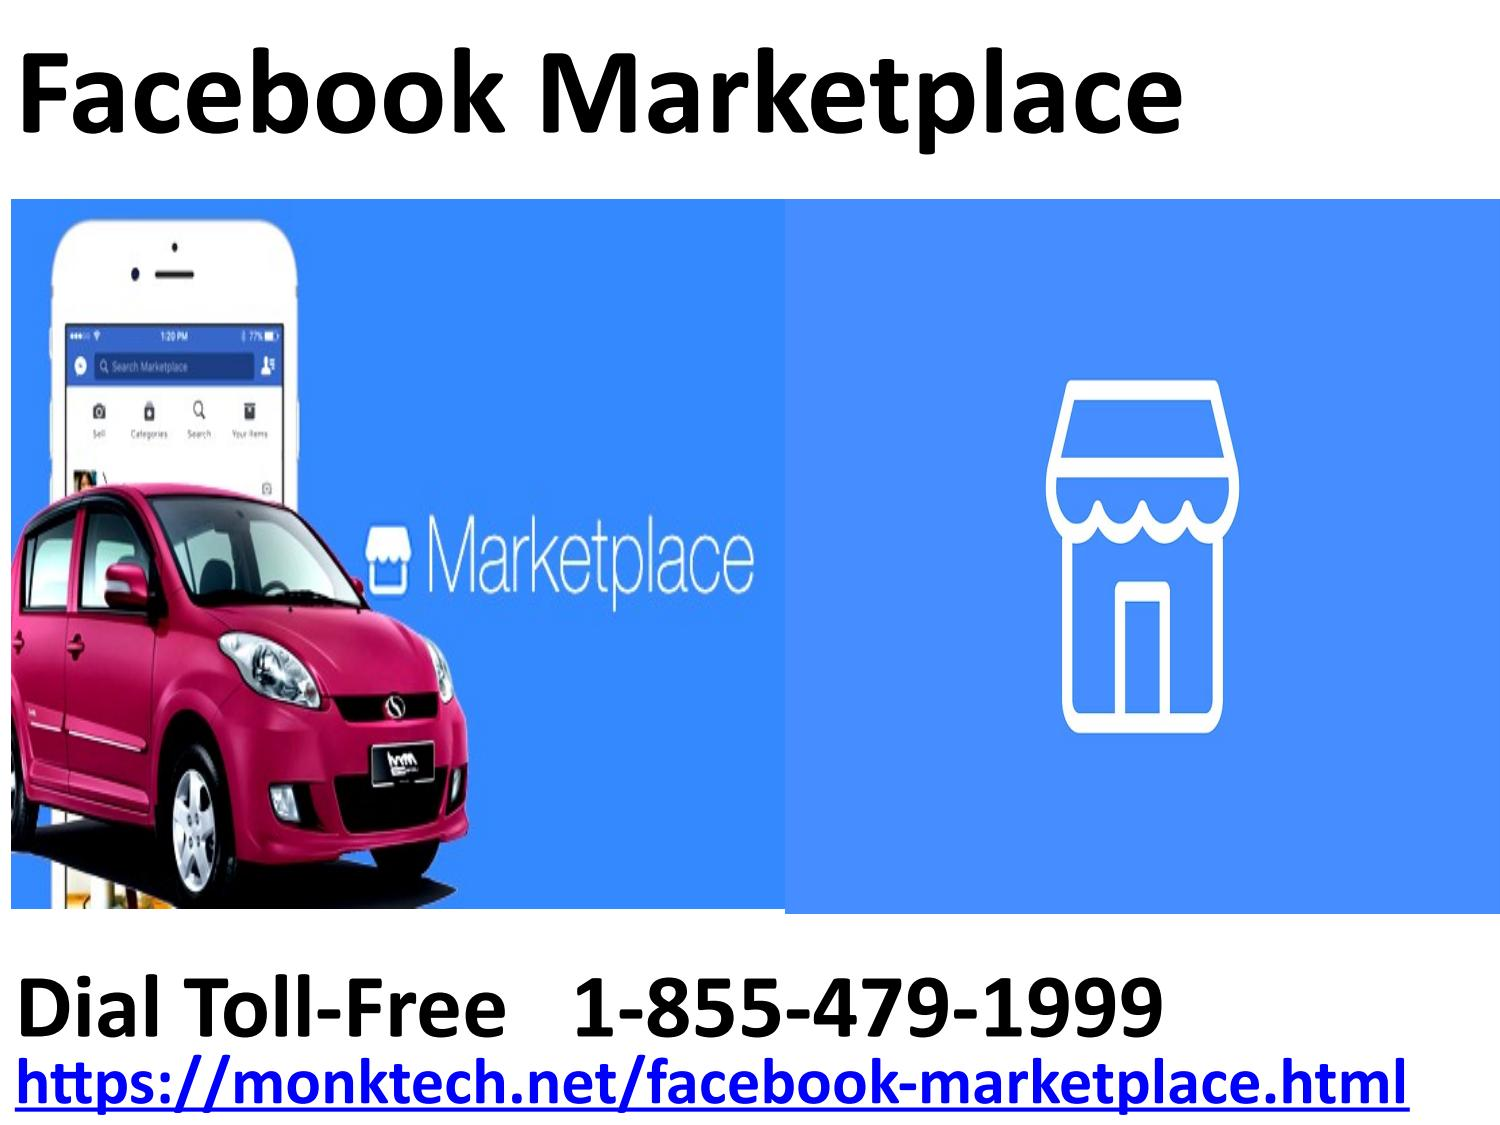 Want to use catalogs for shop section on the 1-855-479-1999